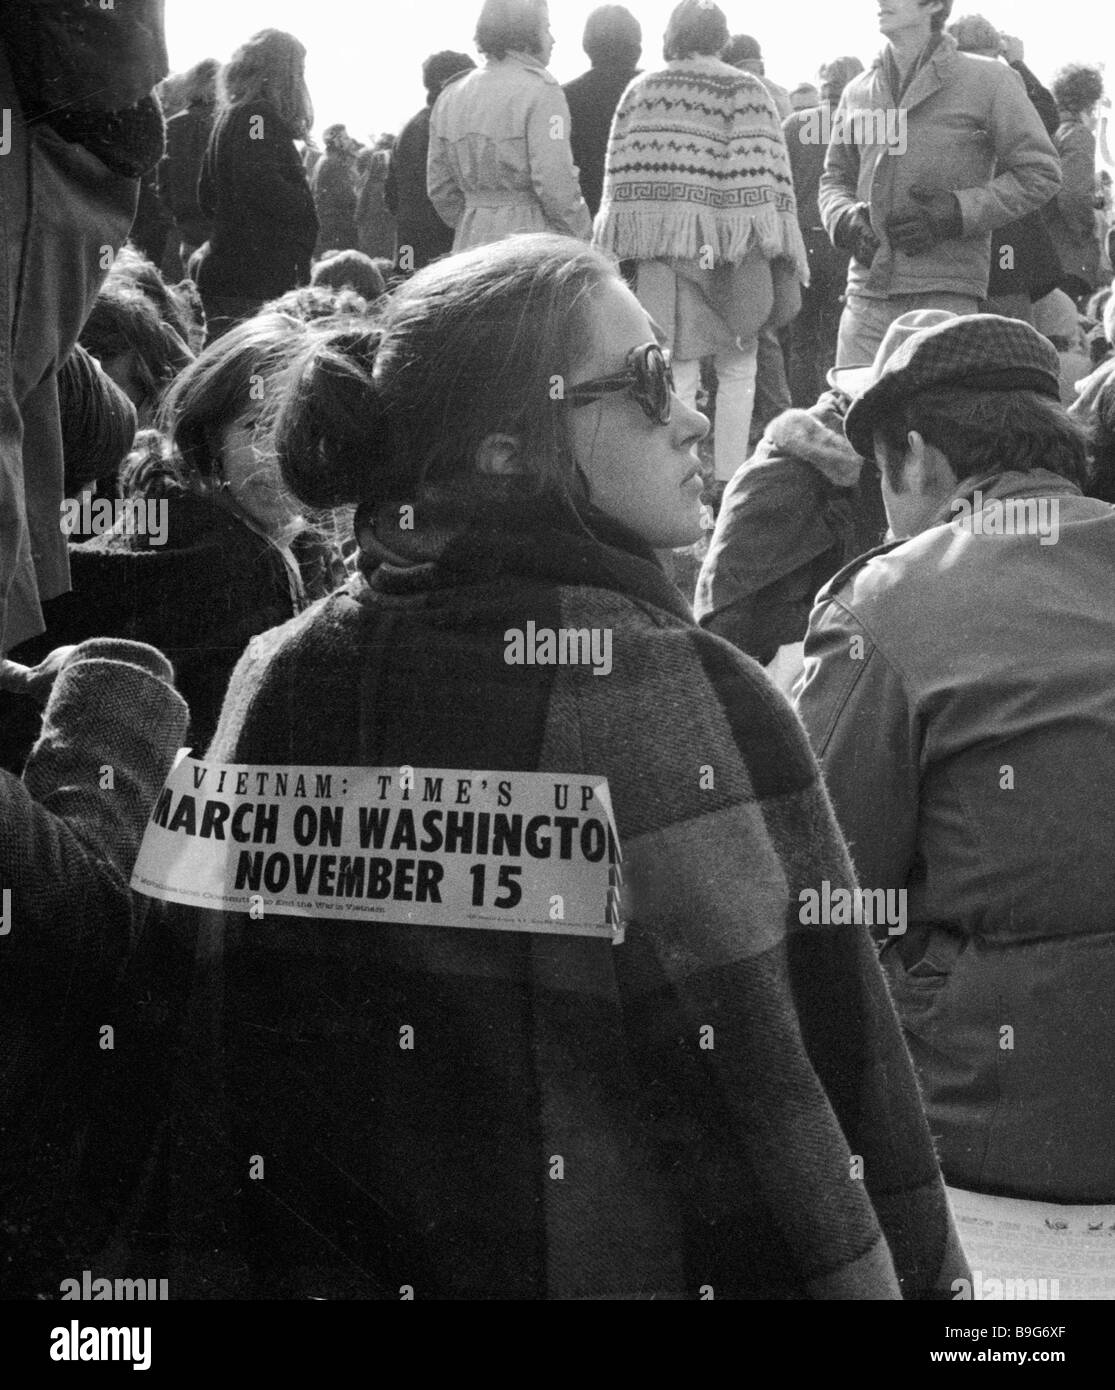 Words on the back of a participant in an anti Vietnam War rally Vietnam Time Is Up March on Washington November - Stock Image